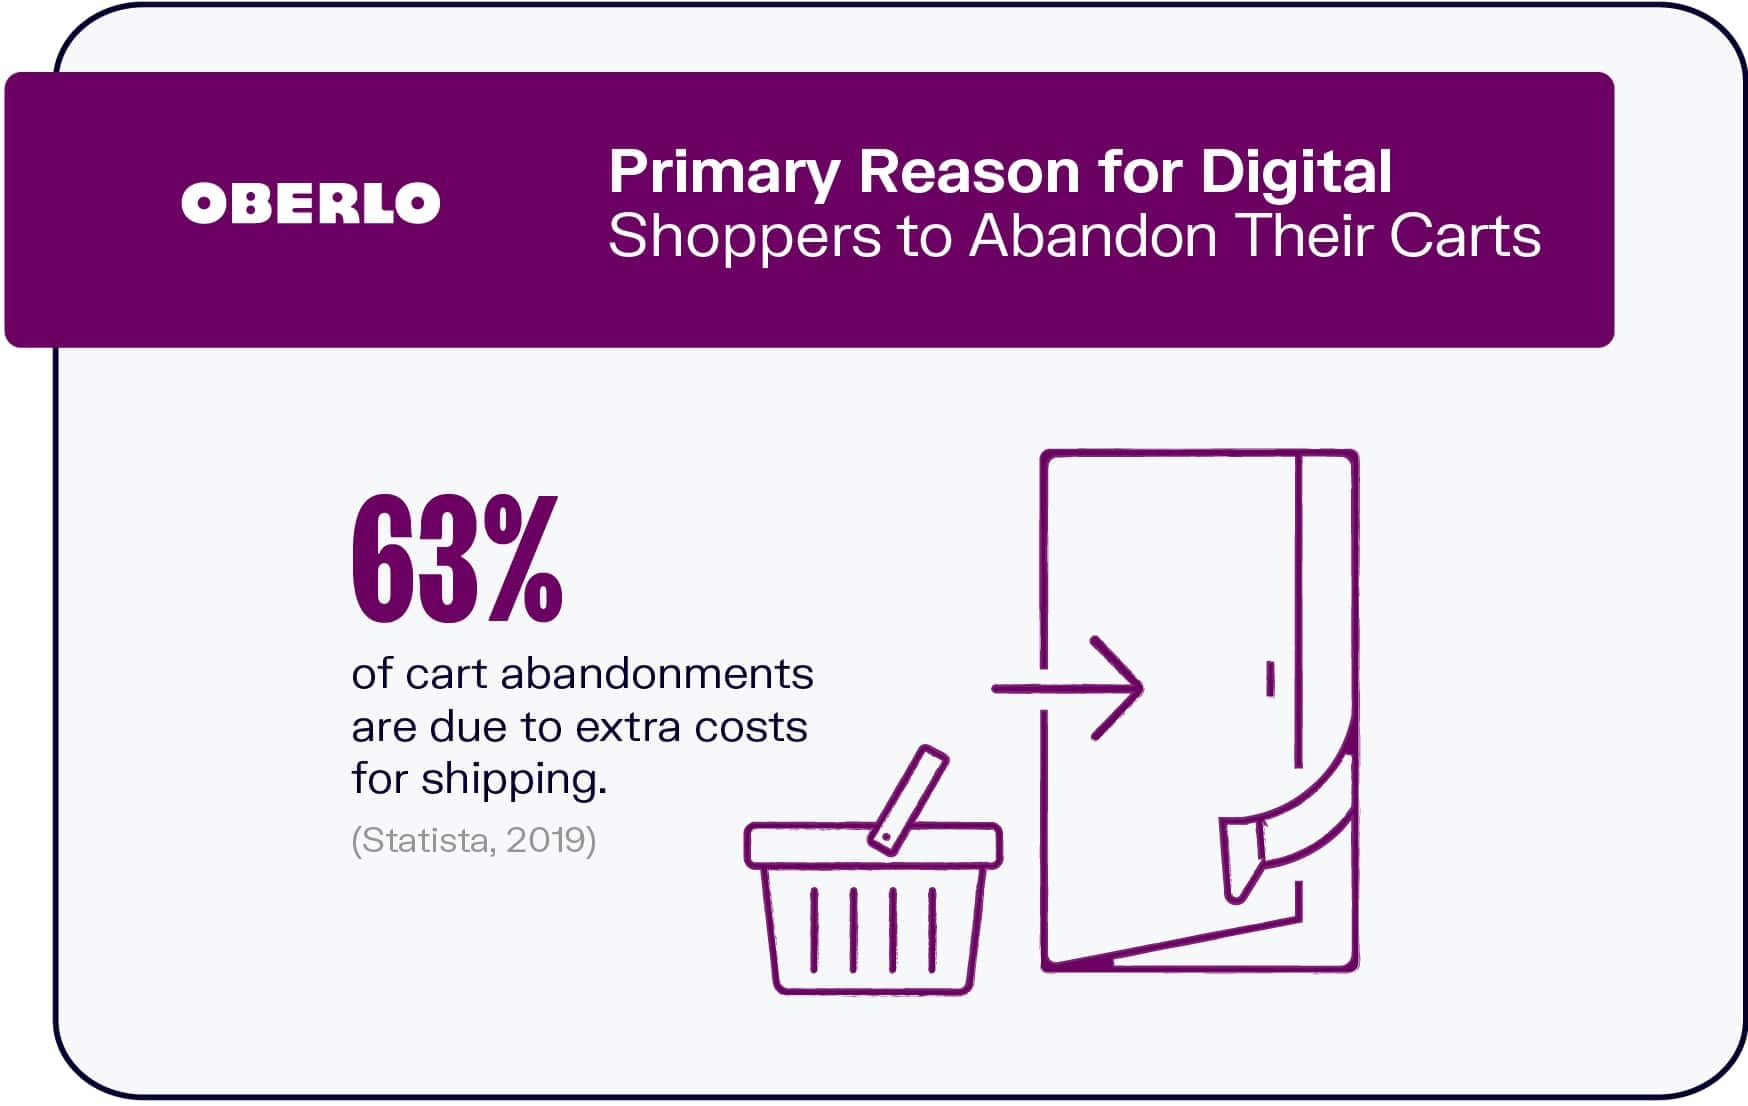 Primary Reason for Online Shoppers to Abandon Their Carts